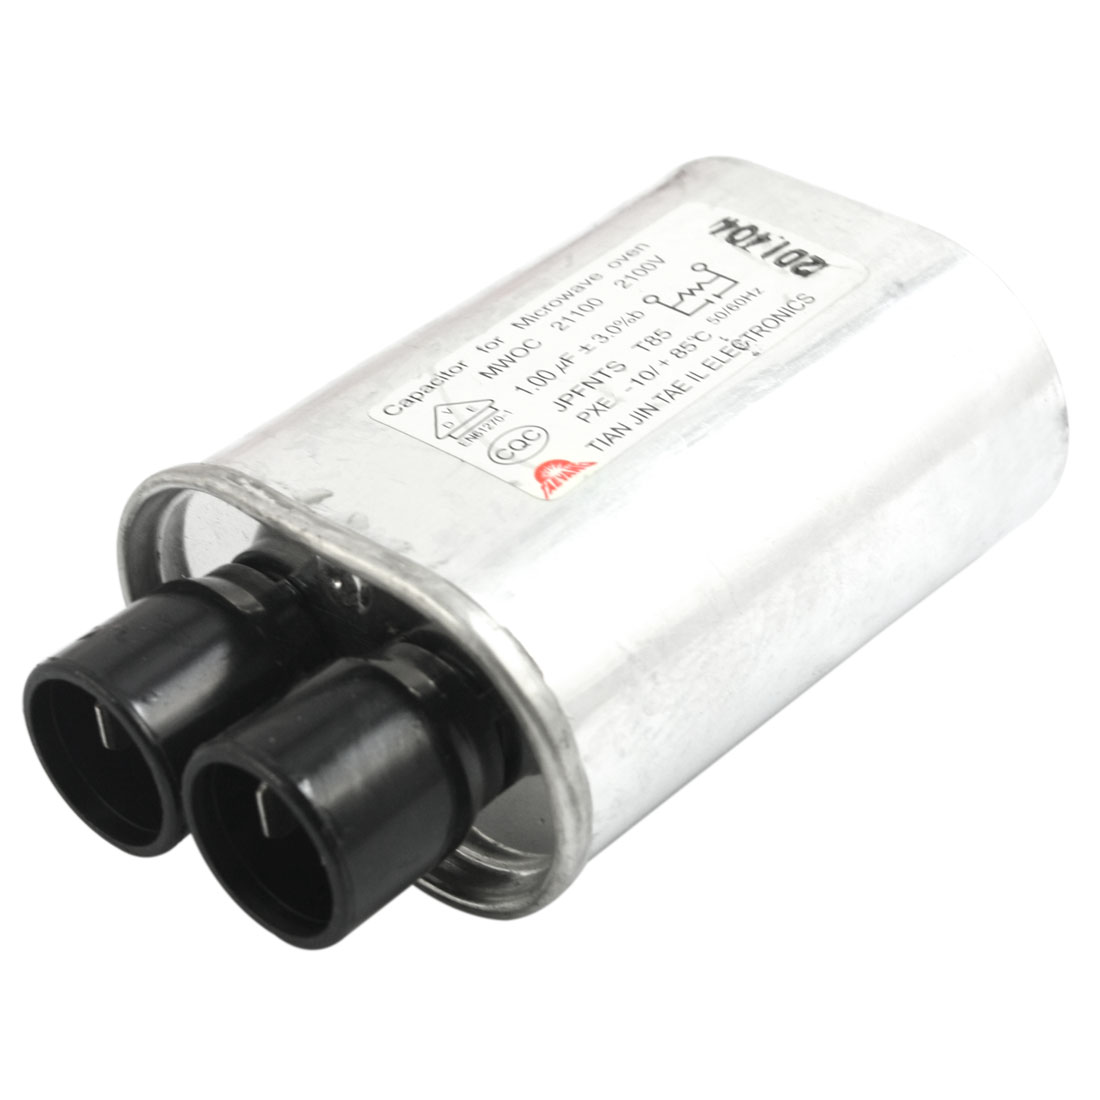 AC 2100V 1.0uF 3%b 50/60Hz Cylindrical High Voltage Microwave Oven Capacitor